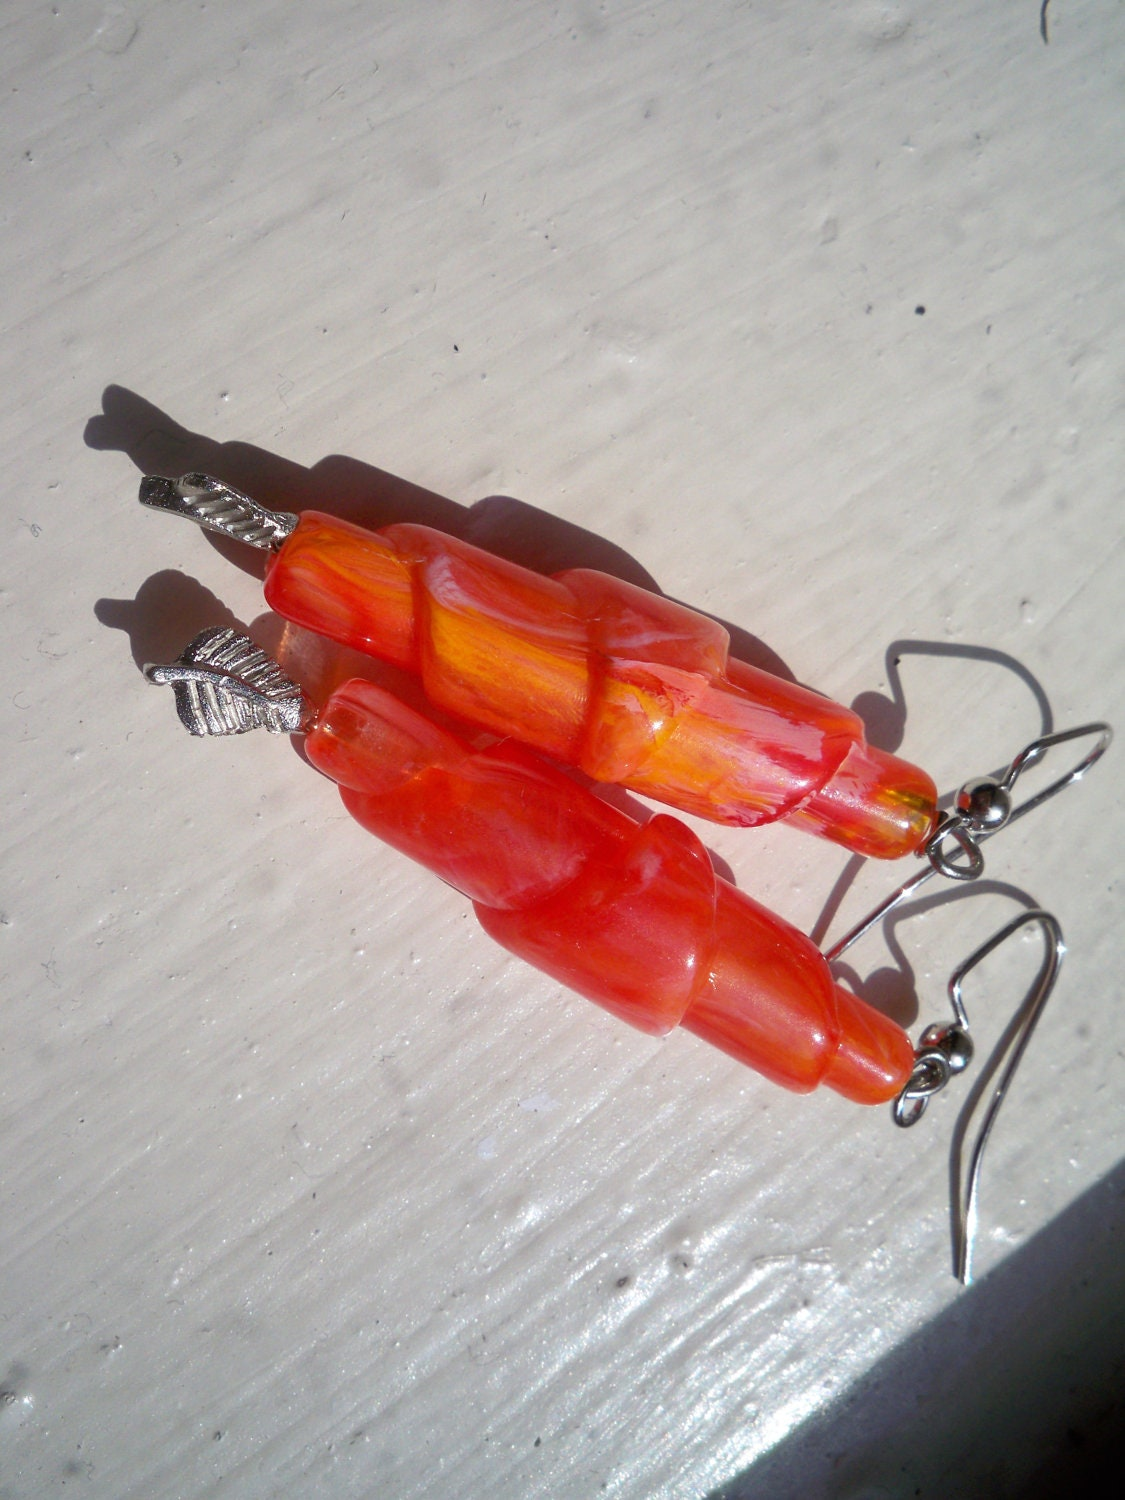 SALE: Vintage Orange Lucite Handrolled Beads - Fall Earring Series - eclecticnesting